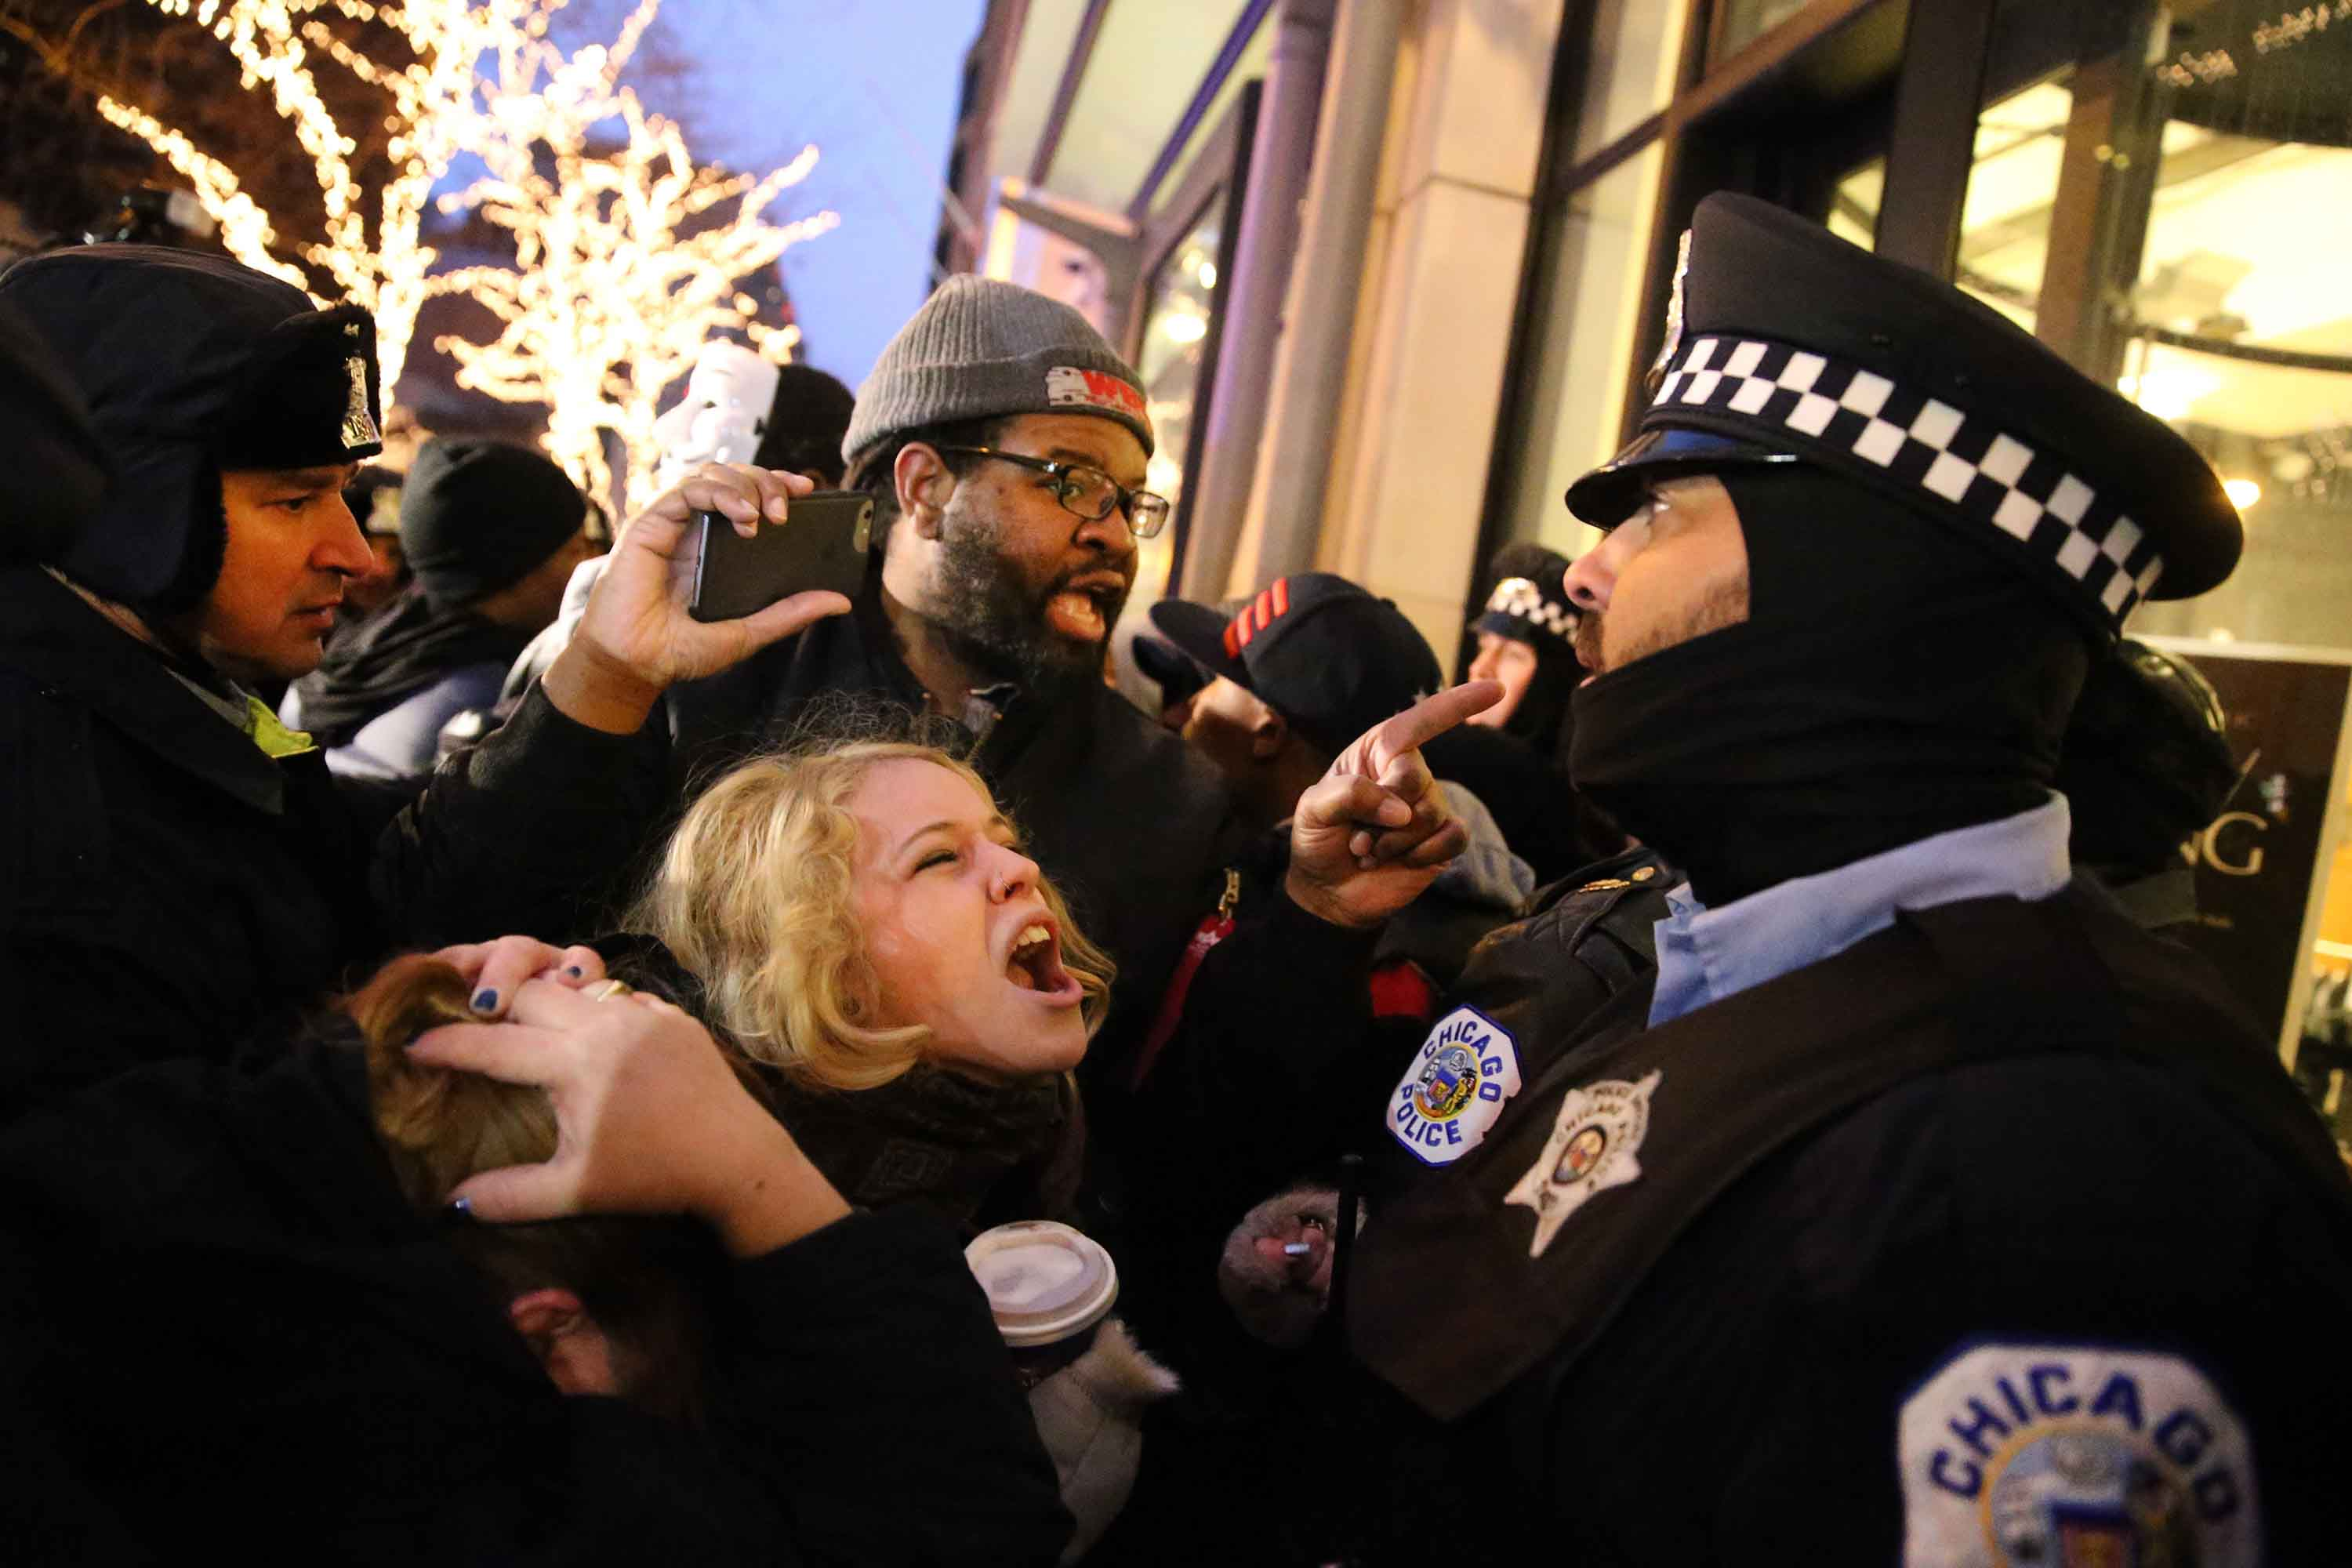 People scream at cops as they protest the shooting death of Laquan McDonald during a clash with Chicago police officers outside of a Banana Republic store on Michigan Avenue on Friday, Nov. 27, 2015. (Chris Sweda/Chicago Tribune/TNS)